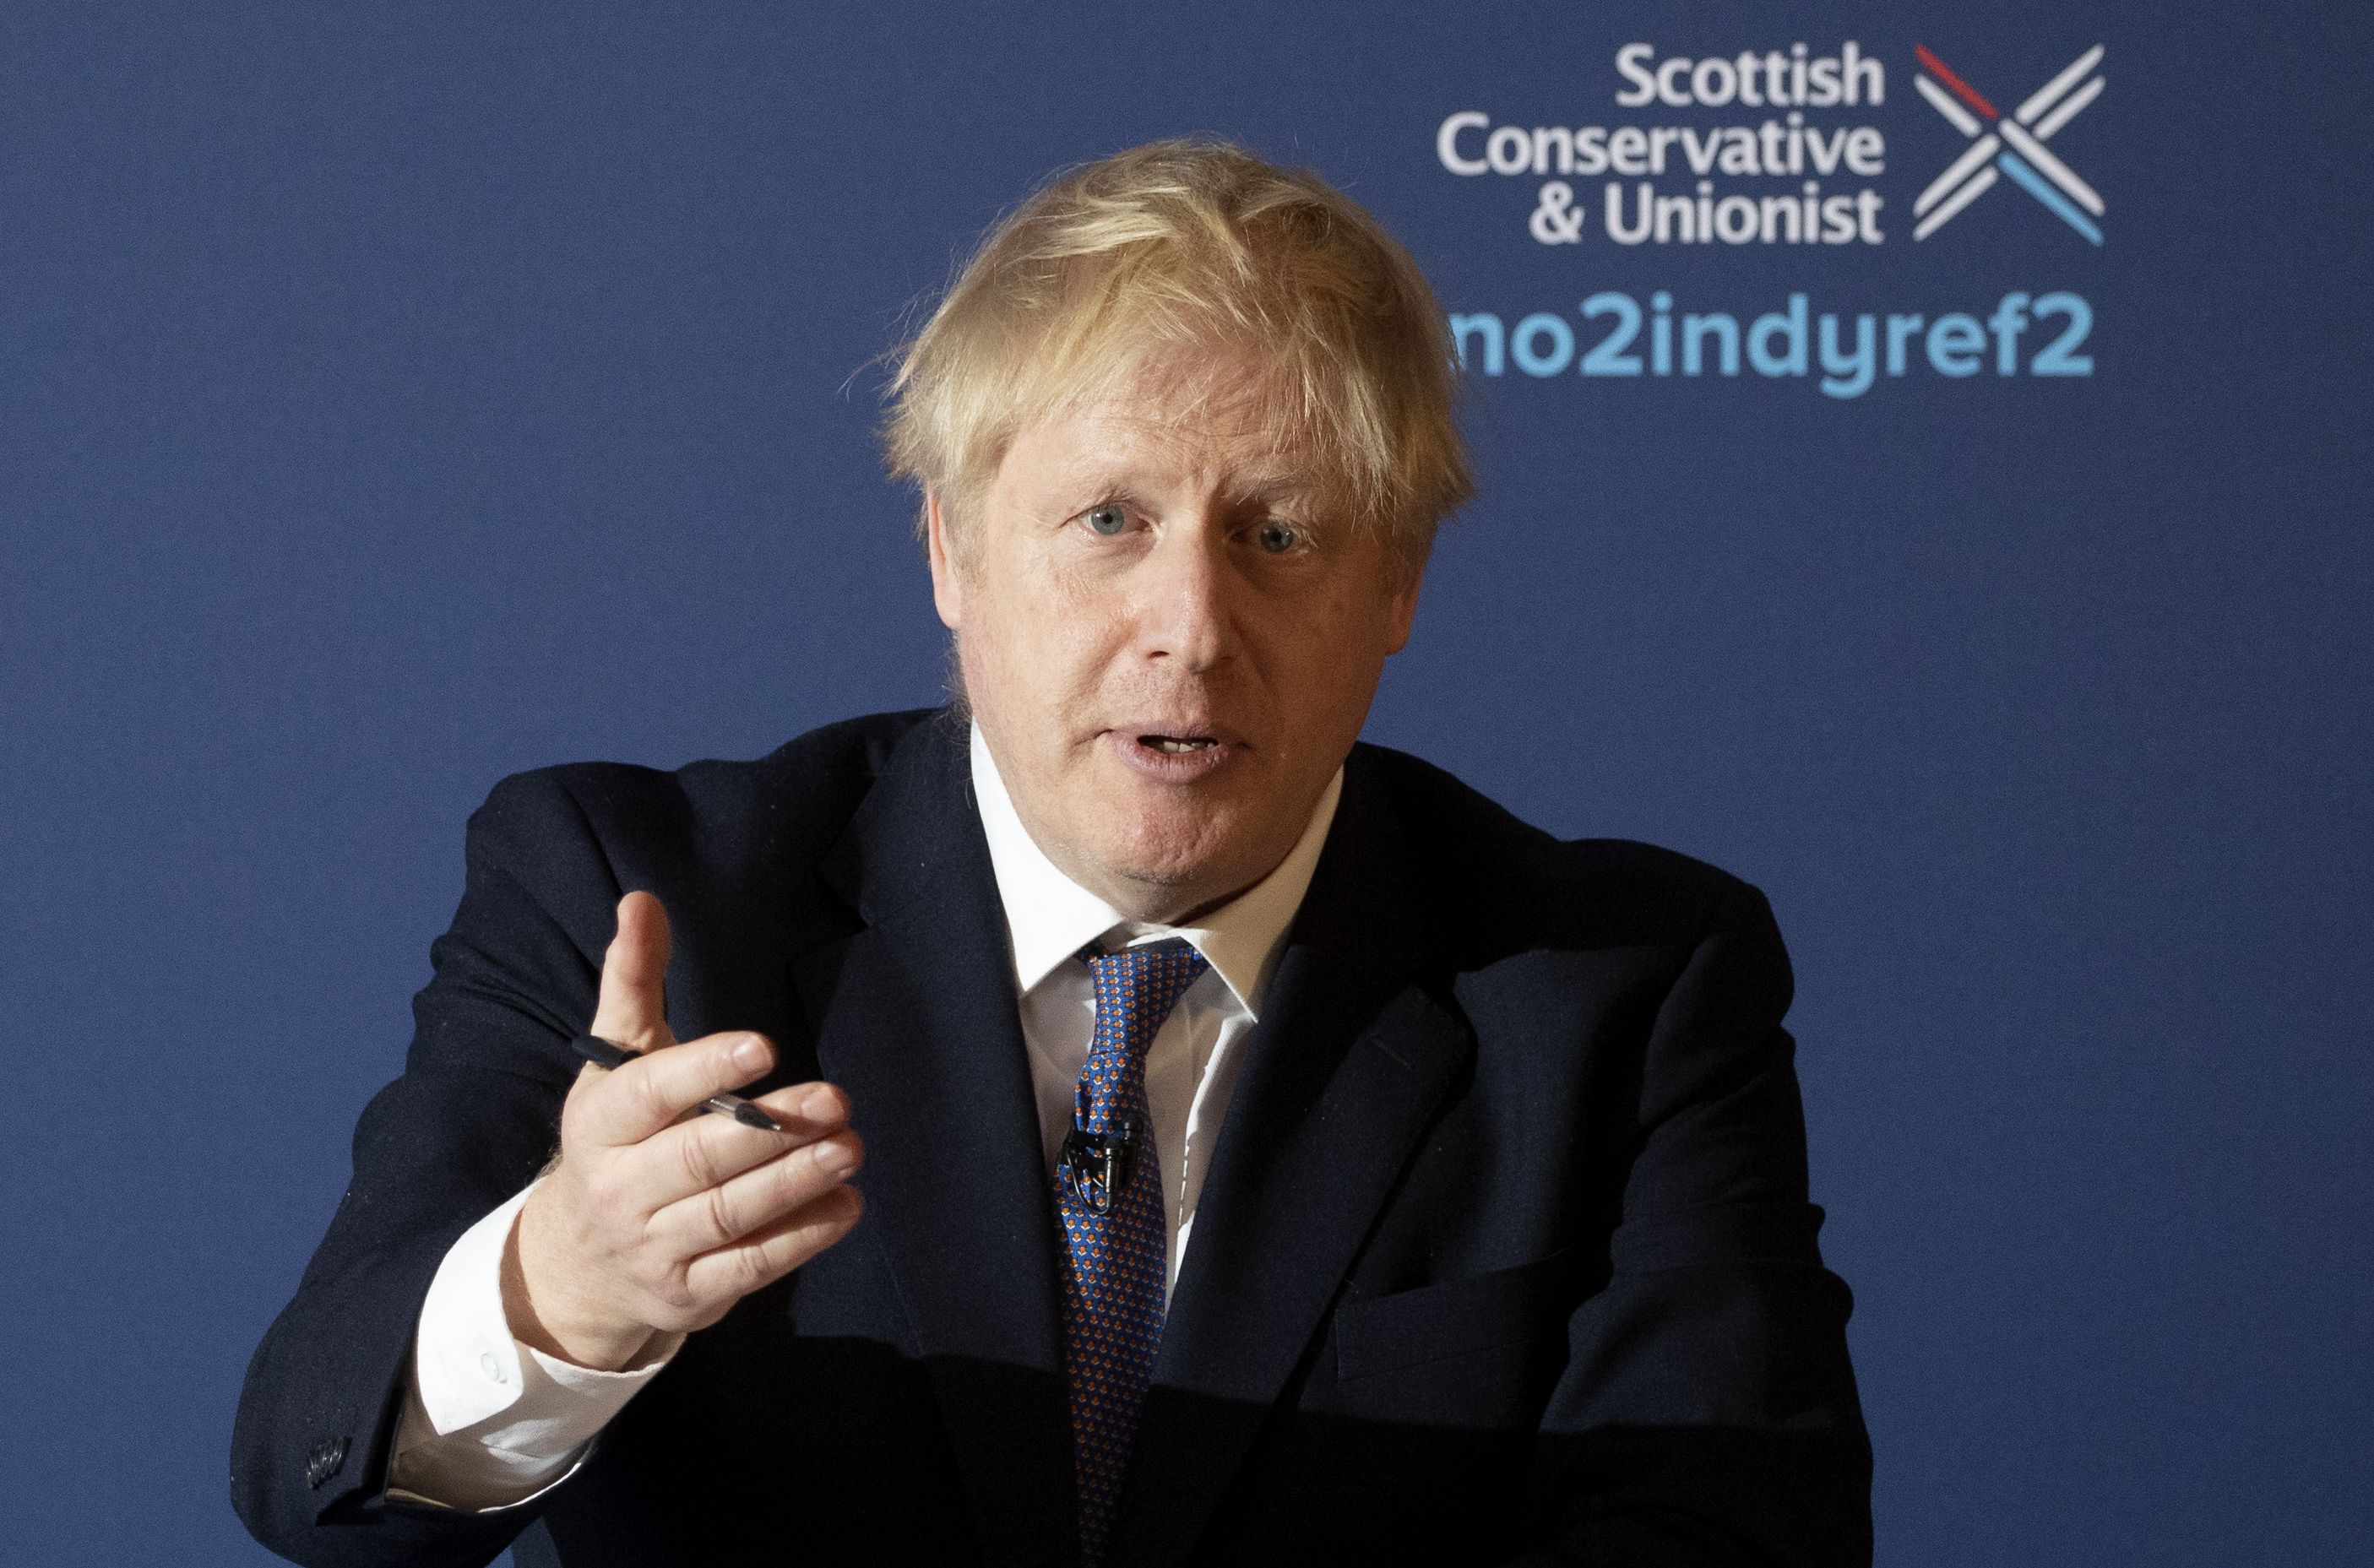 Prime Minister Boris Johnson at the launch of the Scottish Conservative's manifesto during a visit to Fife whilst on the General Election campaign trail.